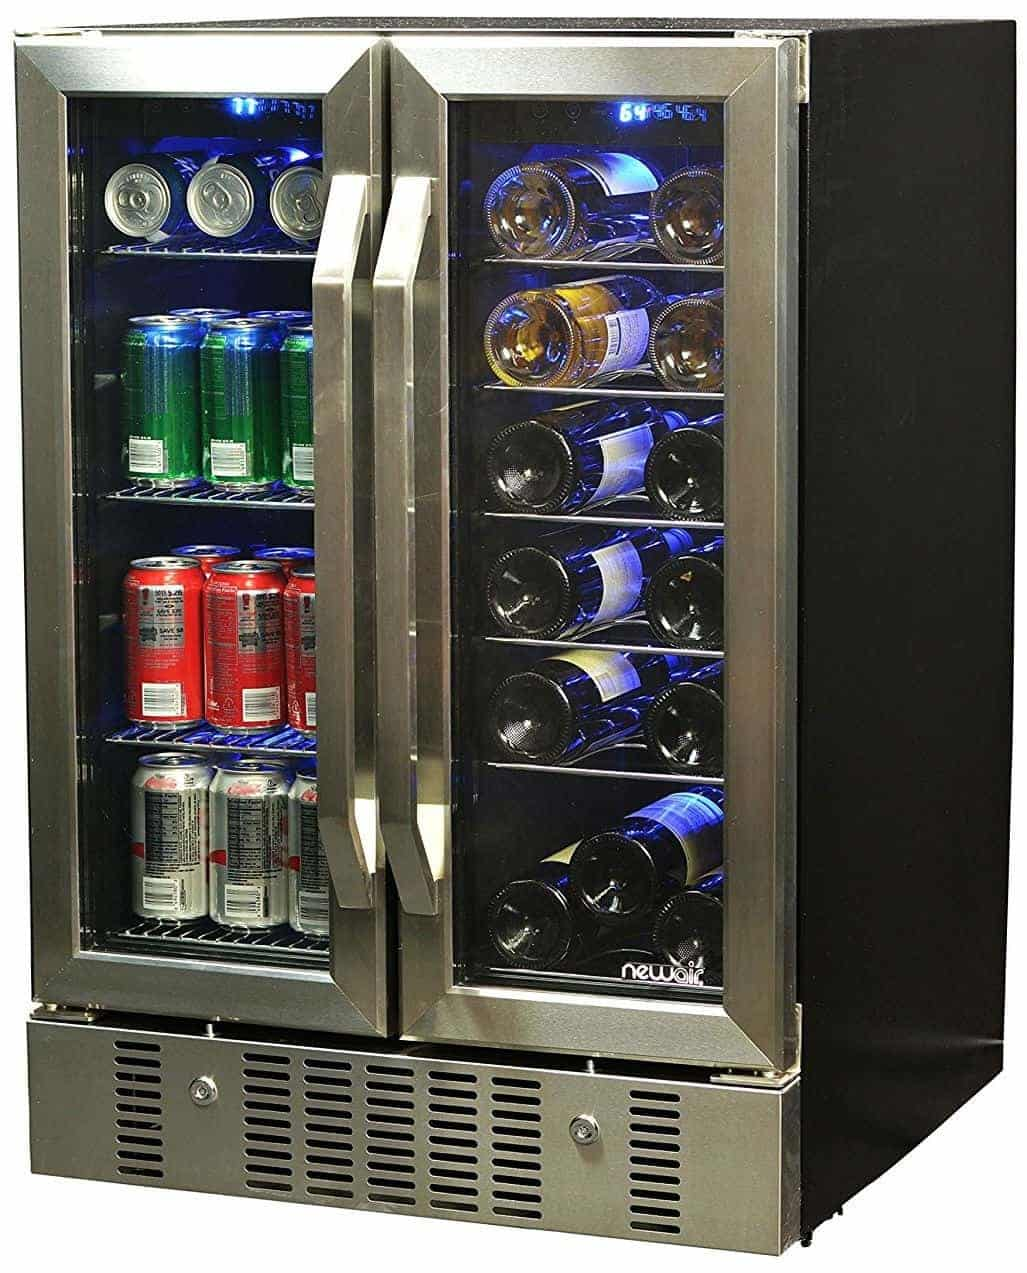 NewAir AWB-360DB 18 Bottle 60 Can Dual Zone Built-In Wine & Beverage Cooler